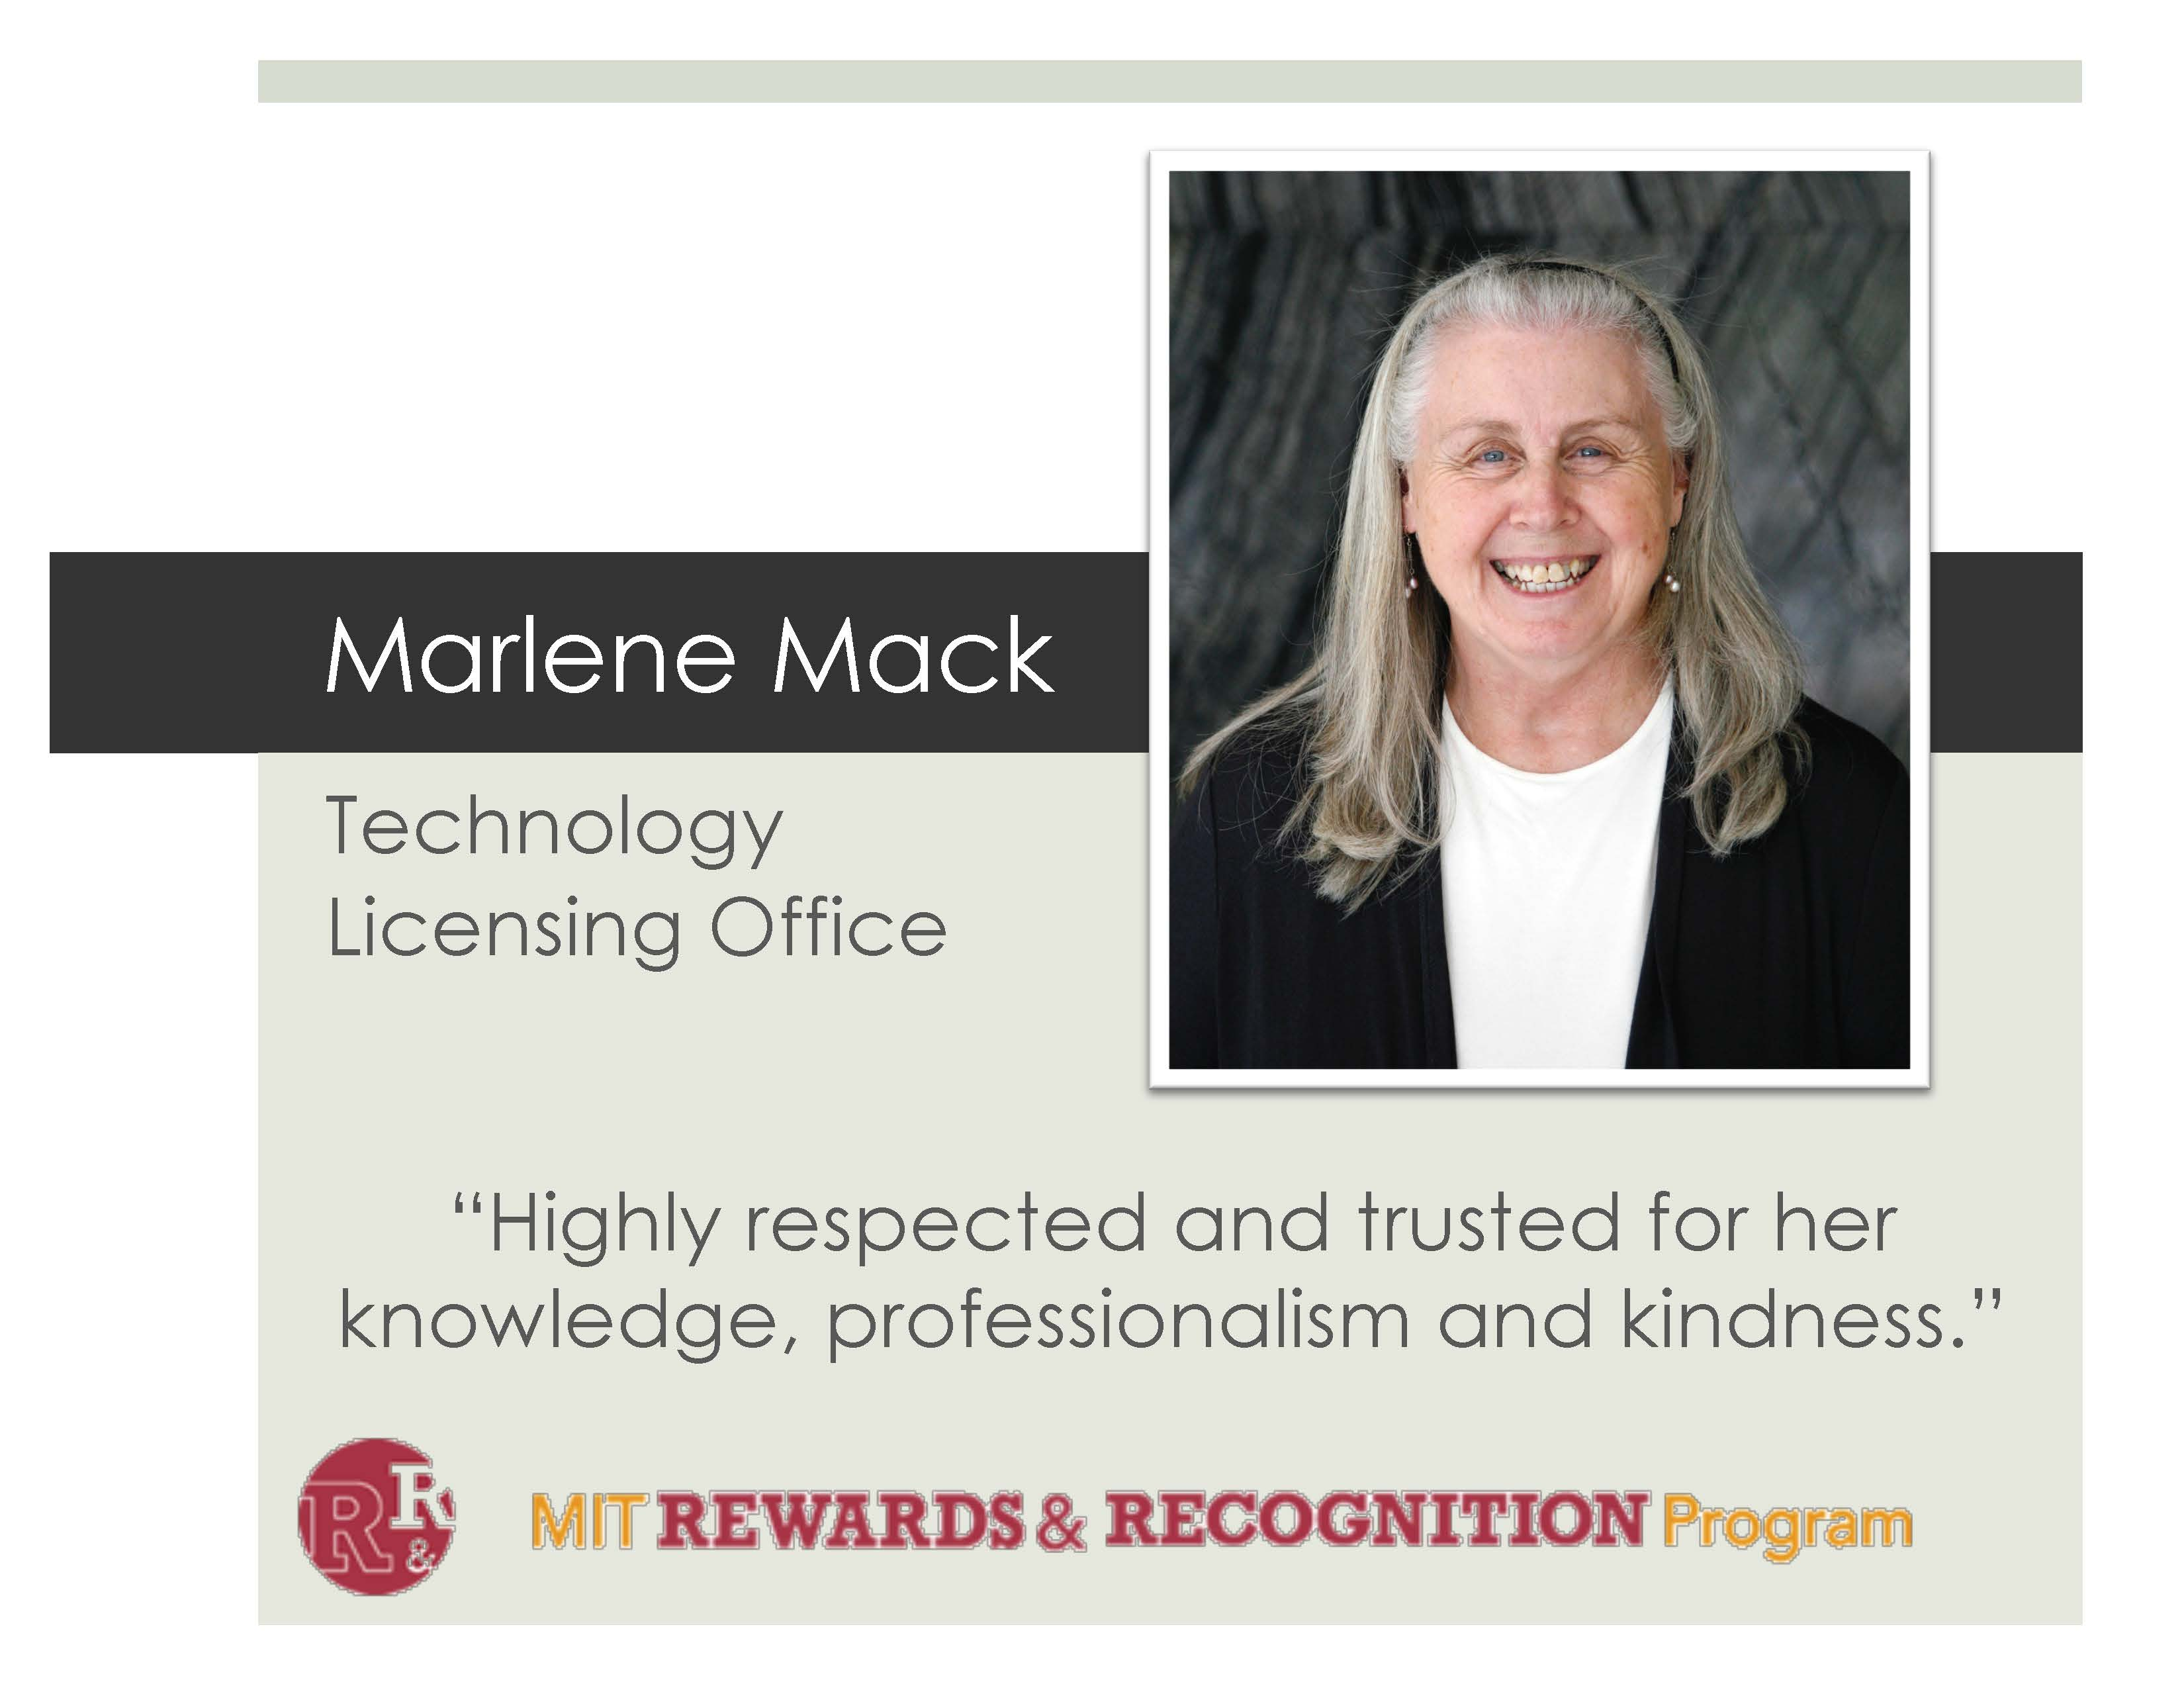 """Image of Marlene Mack with text that reads """"Highly respected and trusted for her knowledge, professionalism, and kindness."""""""